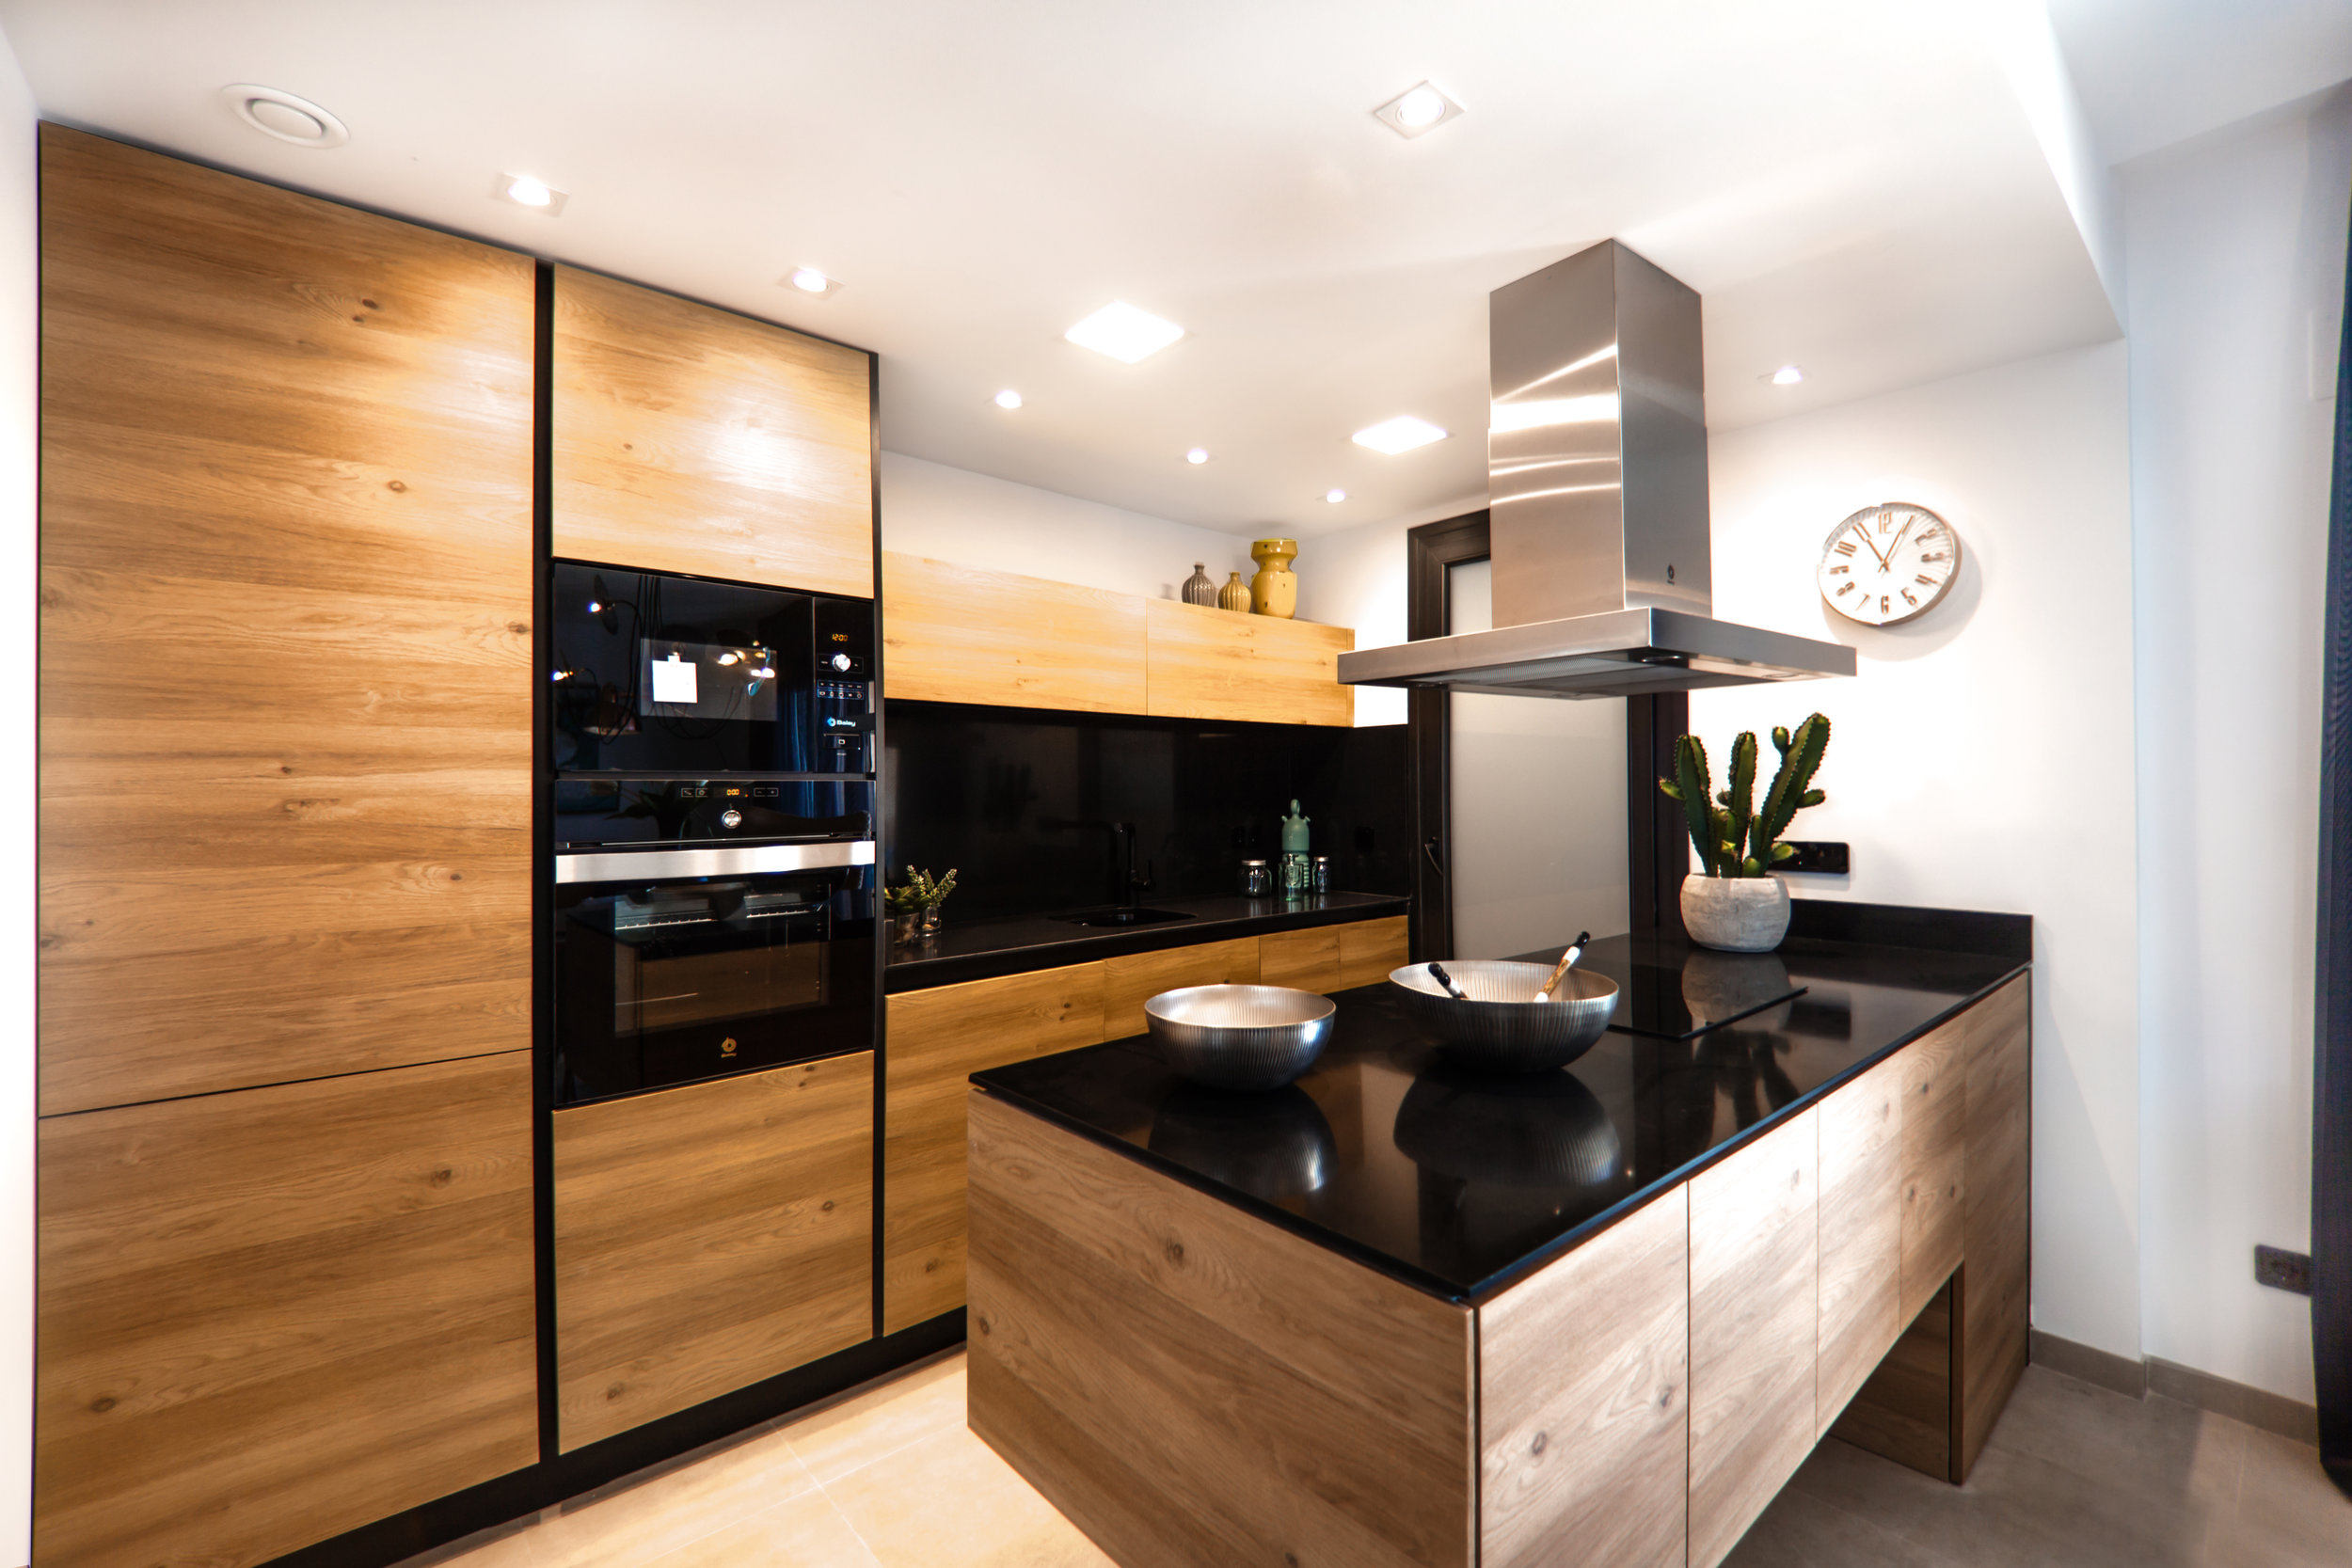 A MIX OF OGANIC MATERIALS AND CUTTING EDGE technology GIVE THIS KITCHEN A MODERN LOOK THAT WILL WORK IN ANY DECADE. Tons of functionality lurks within the major storage and smooth surfaces of this design.